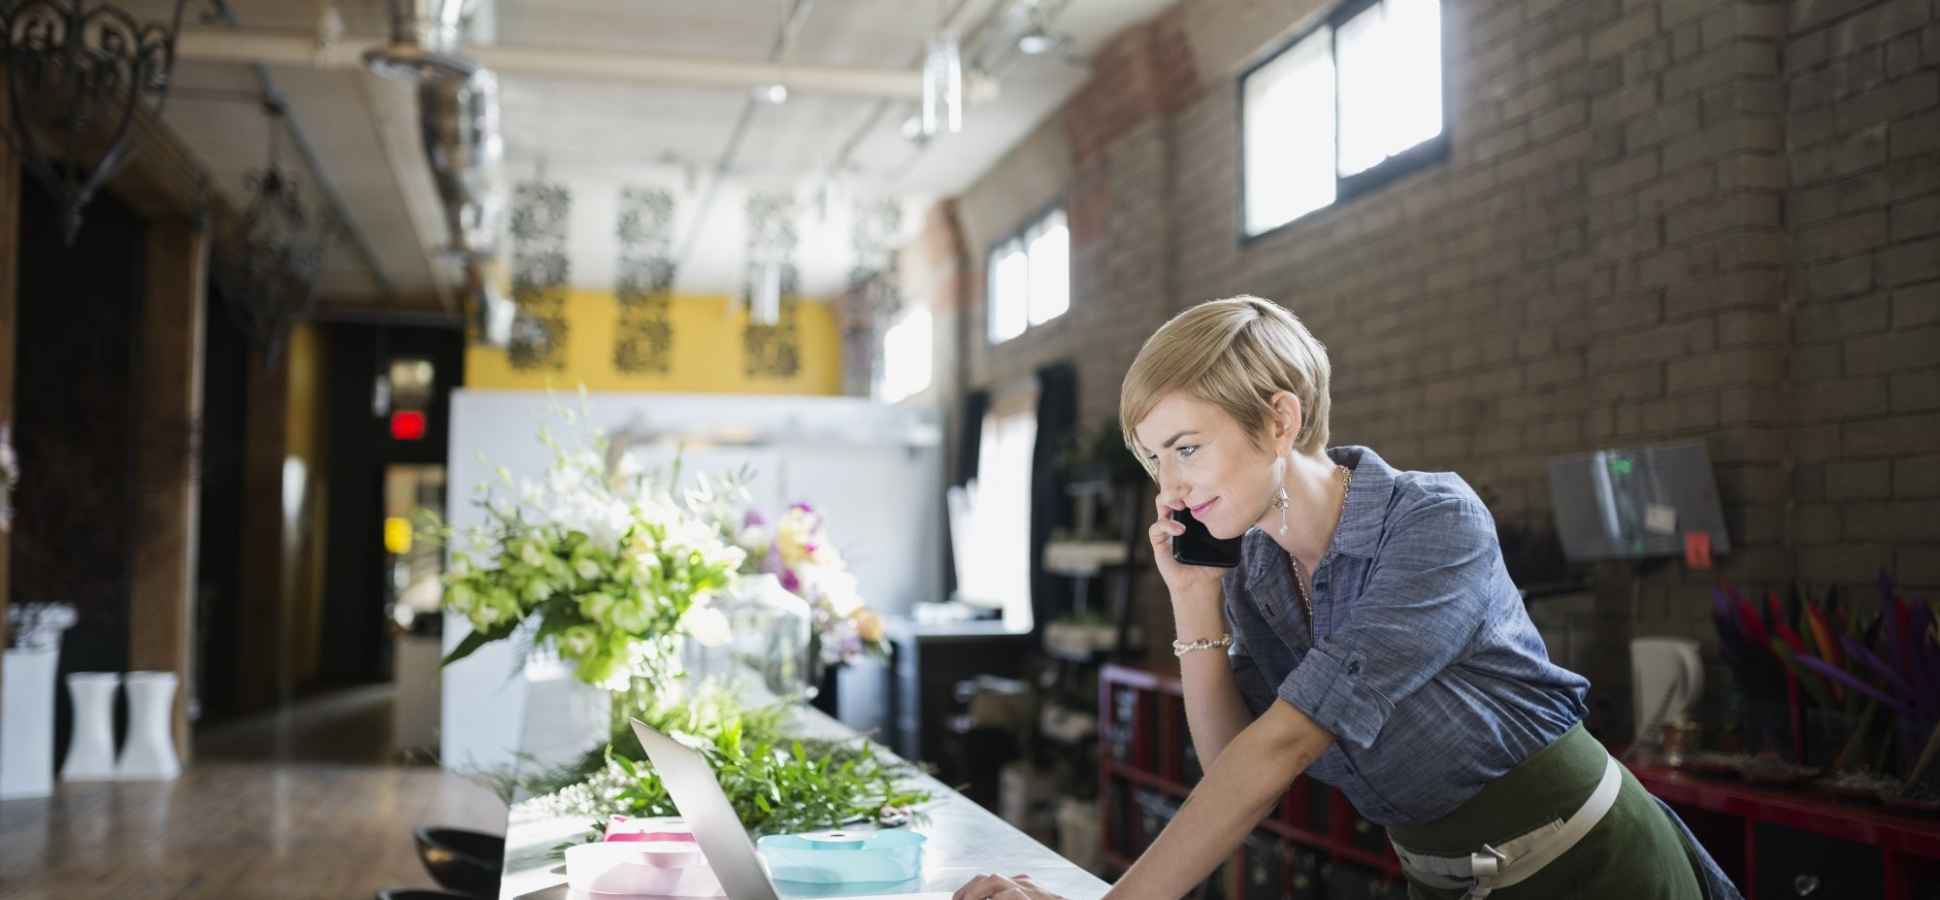 How These 3 Smart Technologies Are Changing The Face Of Small Business